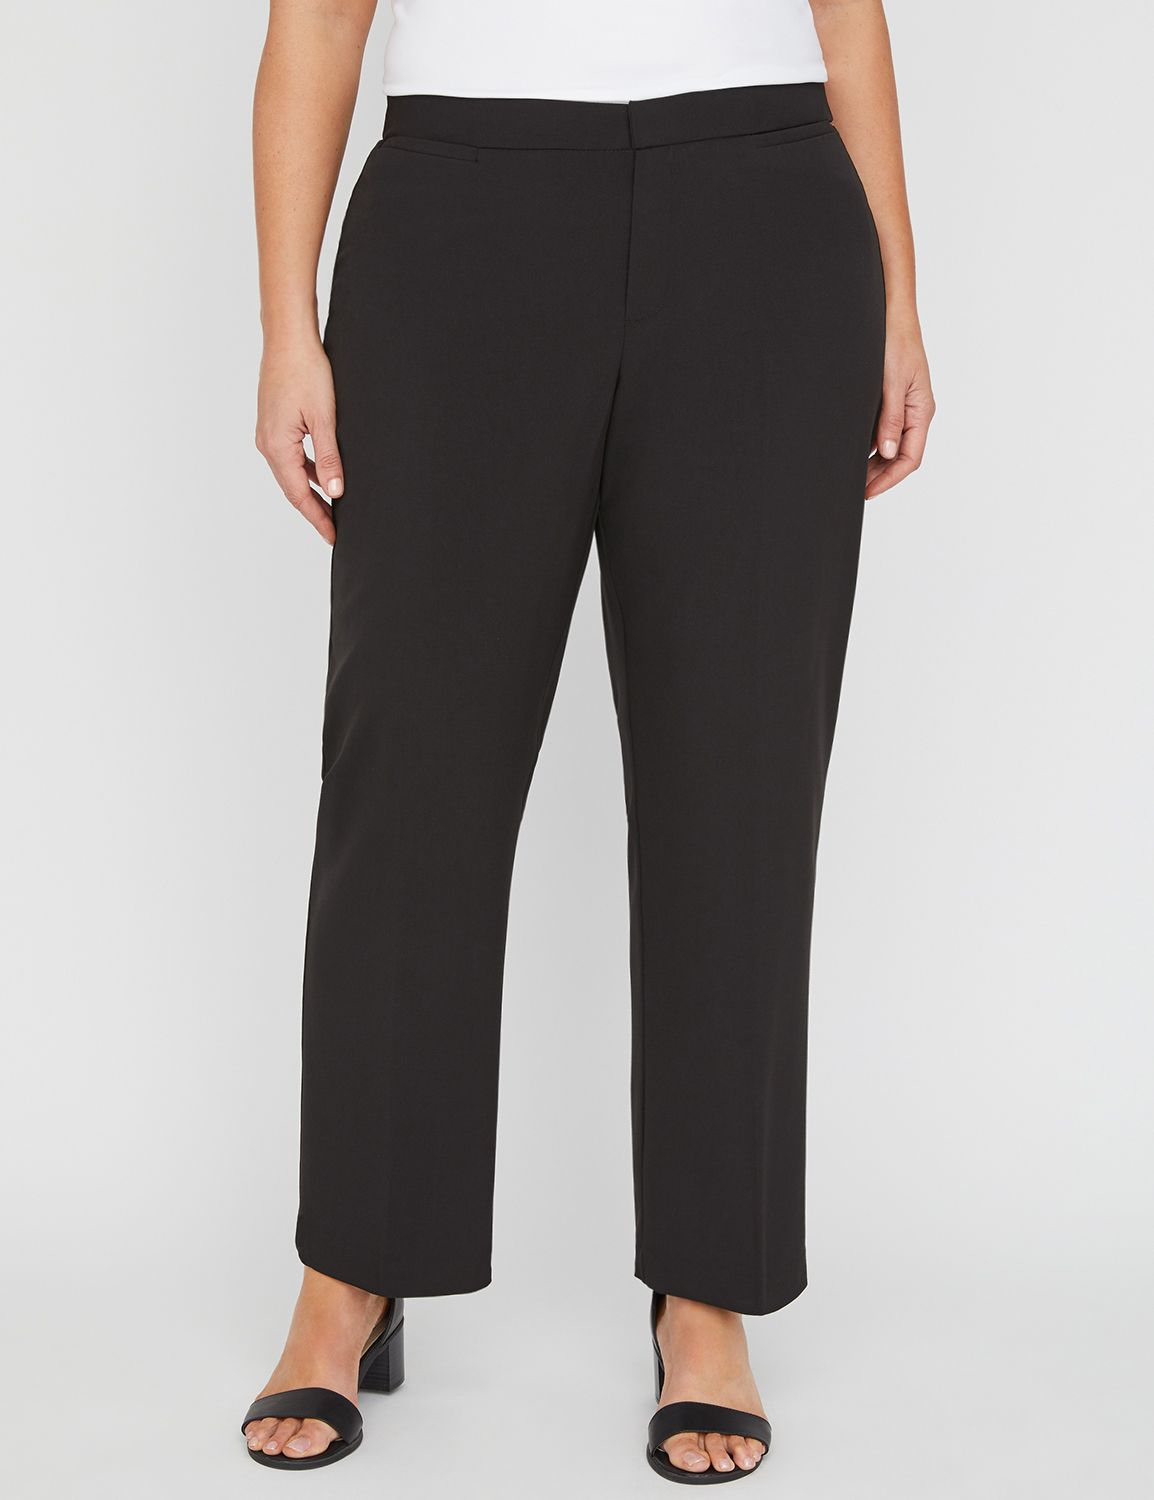 Right Fit Pant (Moderately Curvy) Right Fit Pant (Moderately Curvy) MP-300009903